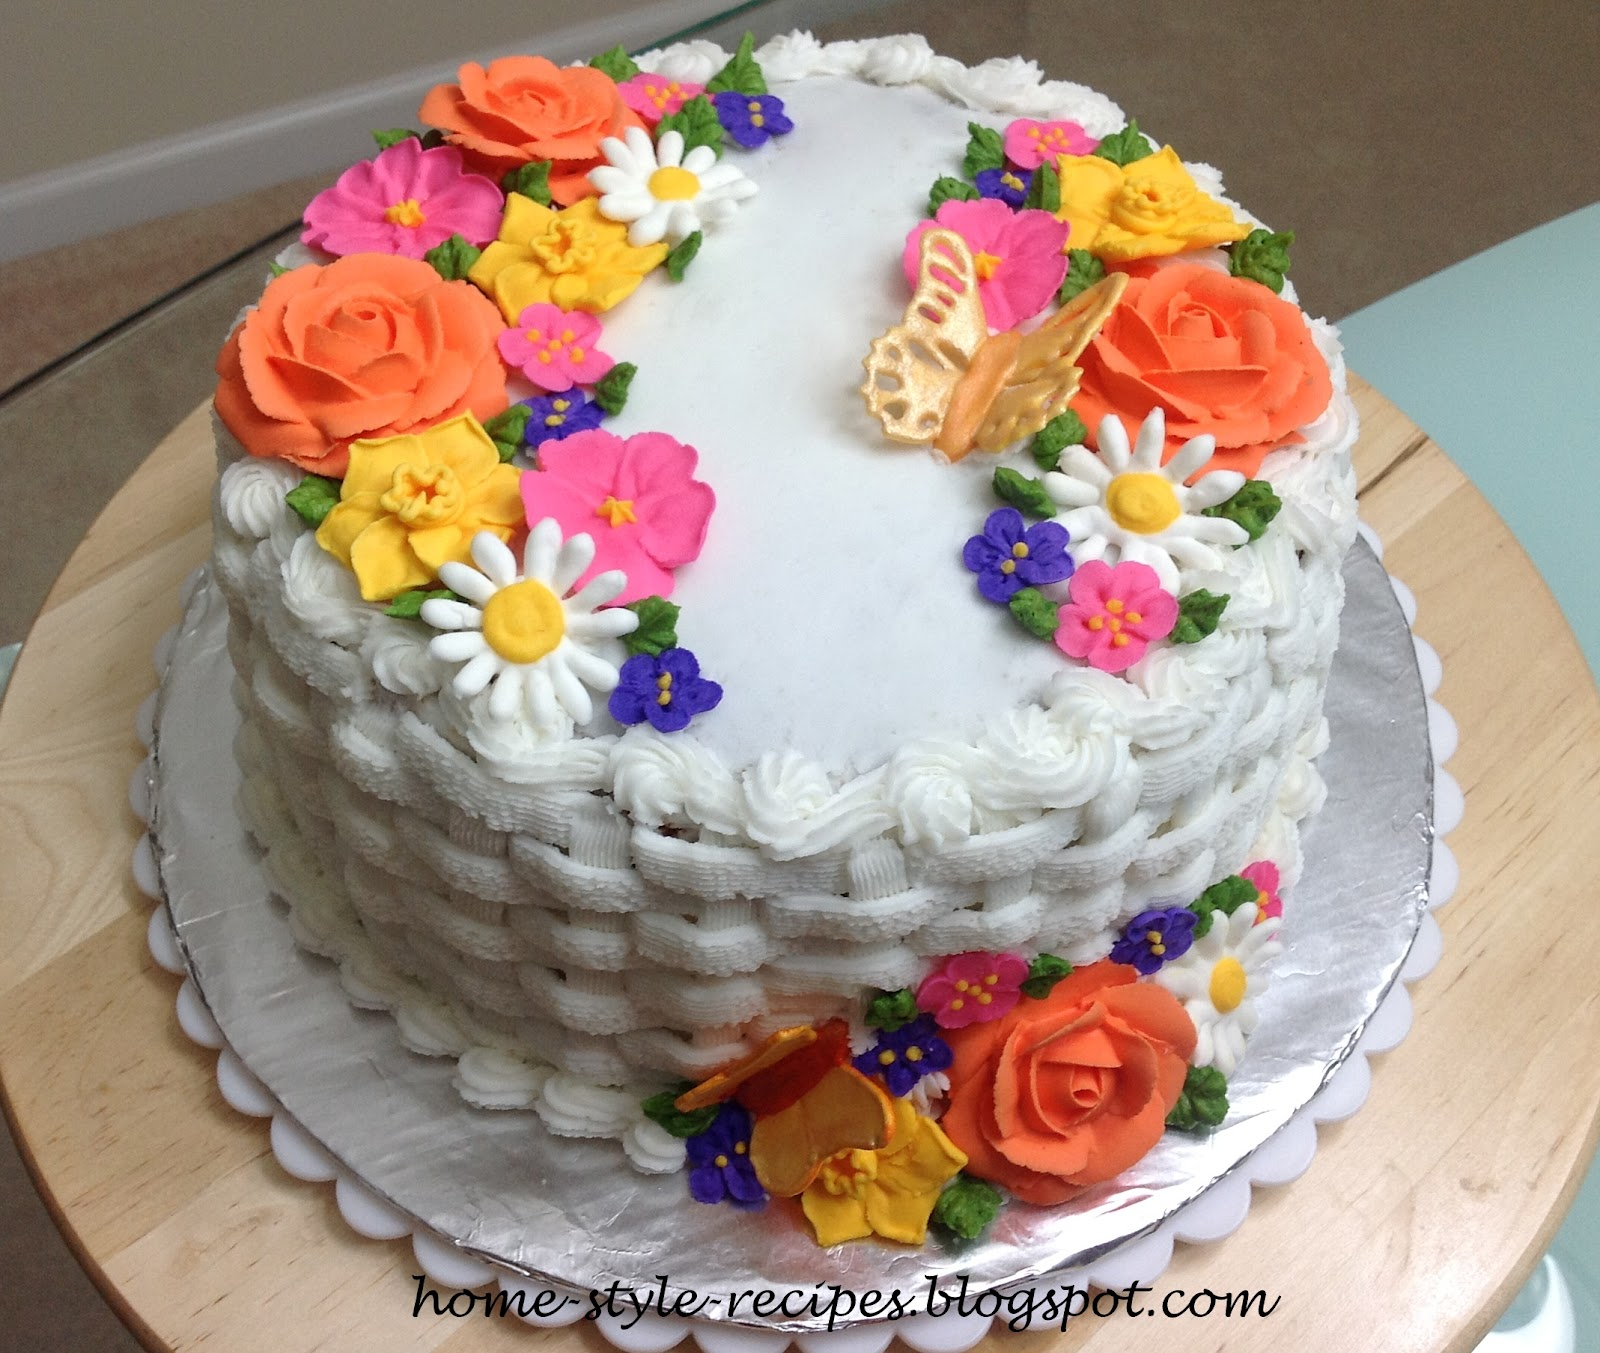 Cake Decorating Icing For Flowers : Share-A-Recipe: May 2012